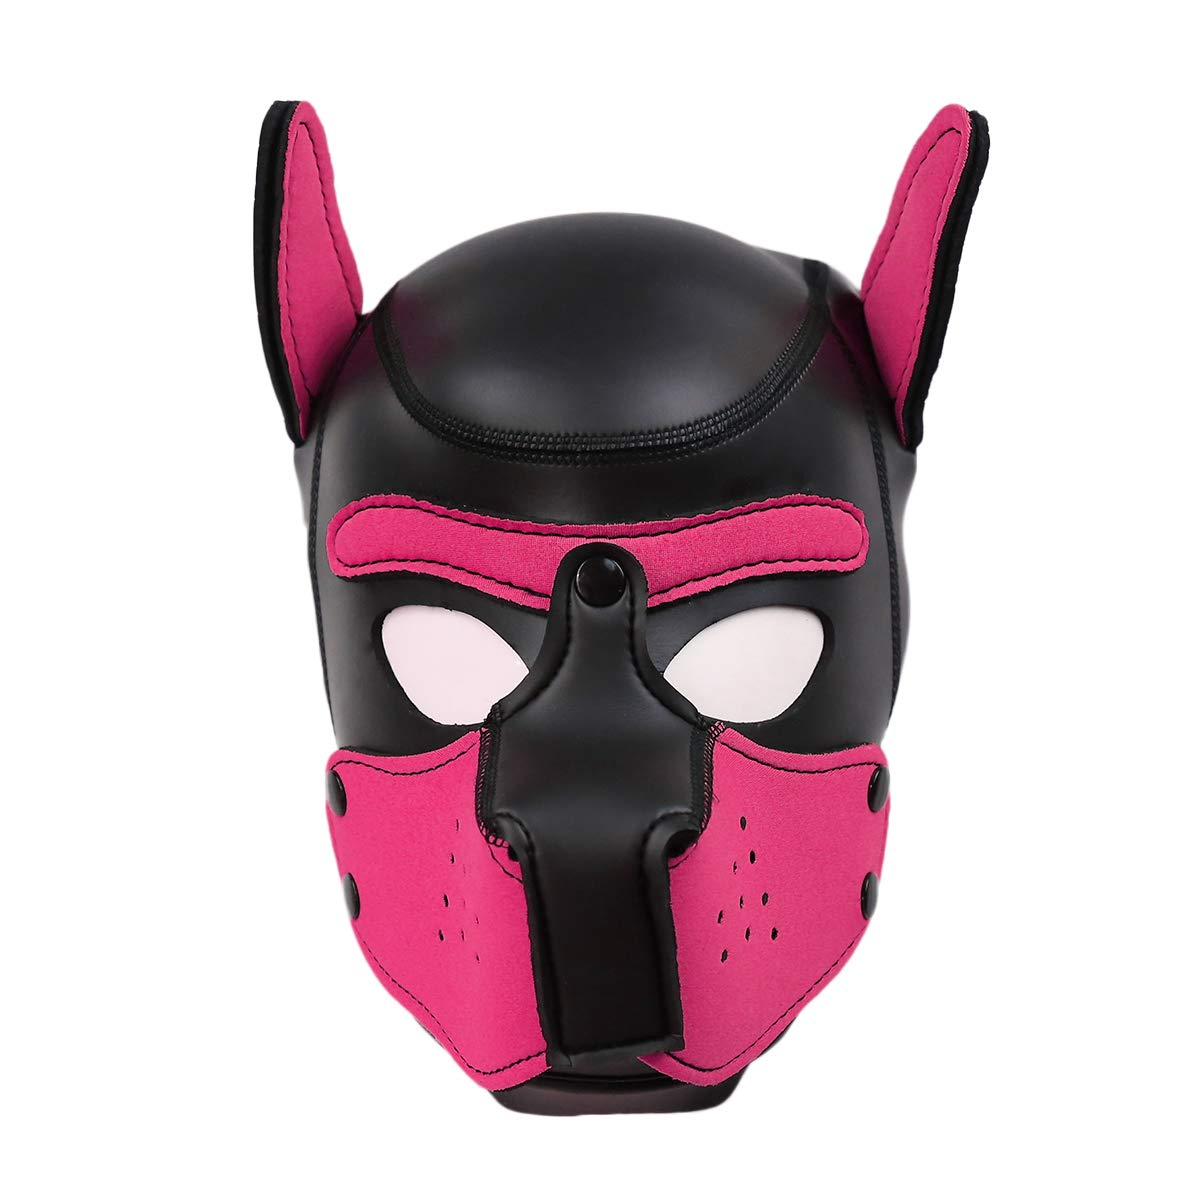 XuSha Neoprene Puppy Mask Dog Hood Pet Hat Removable Mouth Cosplay Party Props Animal Imitation Puppy Mask Medium Pink by XuSha